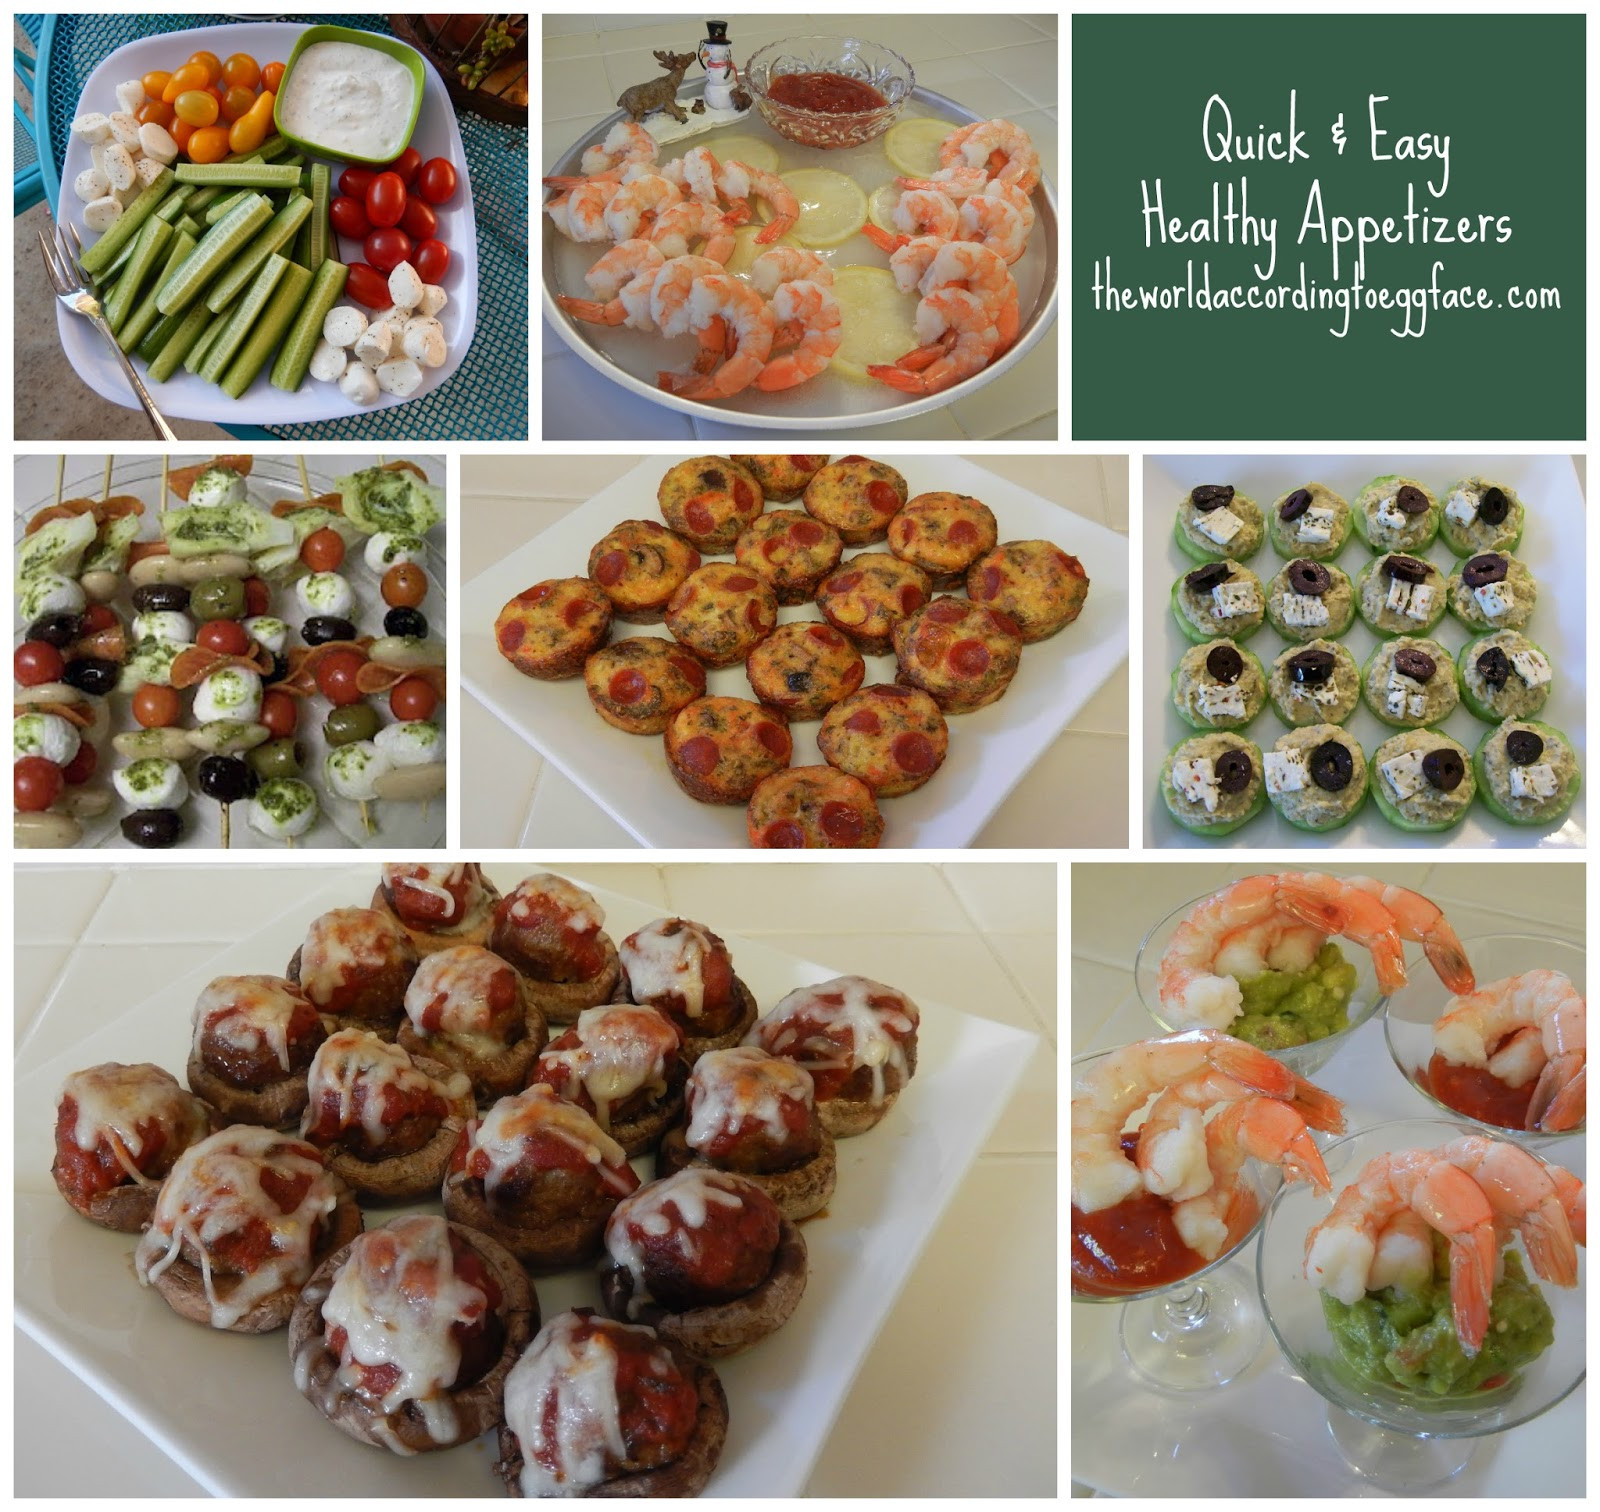 Easy Appetizers Healthy  theworldaccordingtoeggface Super Easy Appetizers